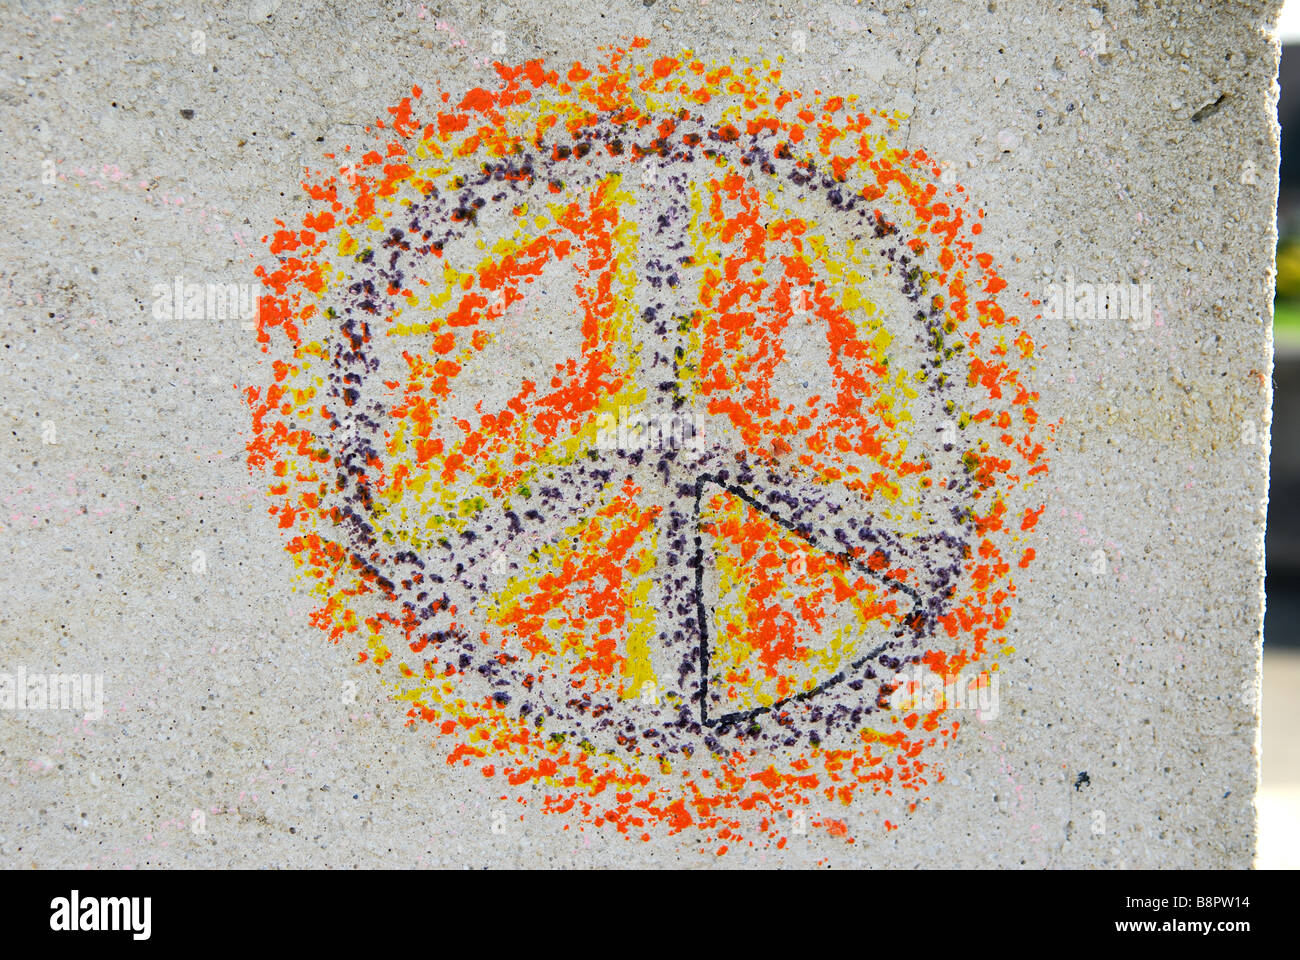 CND/PEACE SIGN. Photo Stock